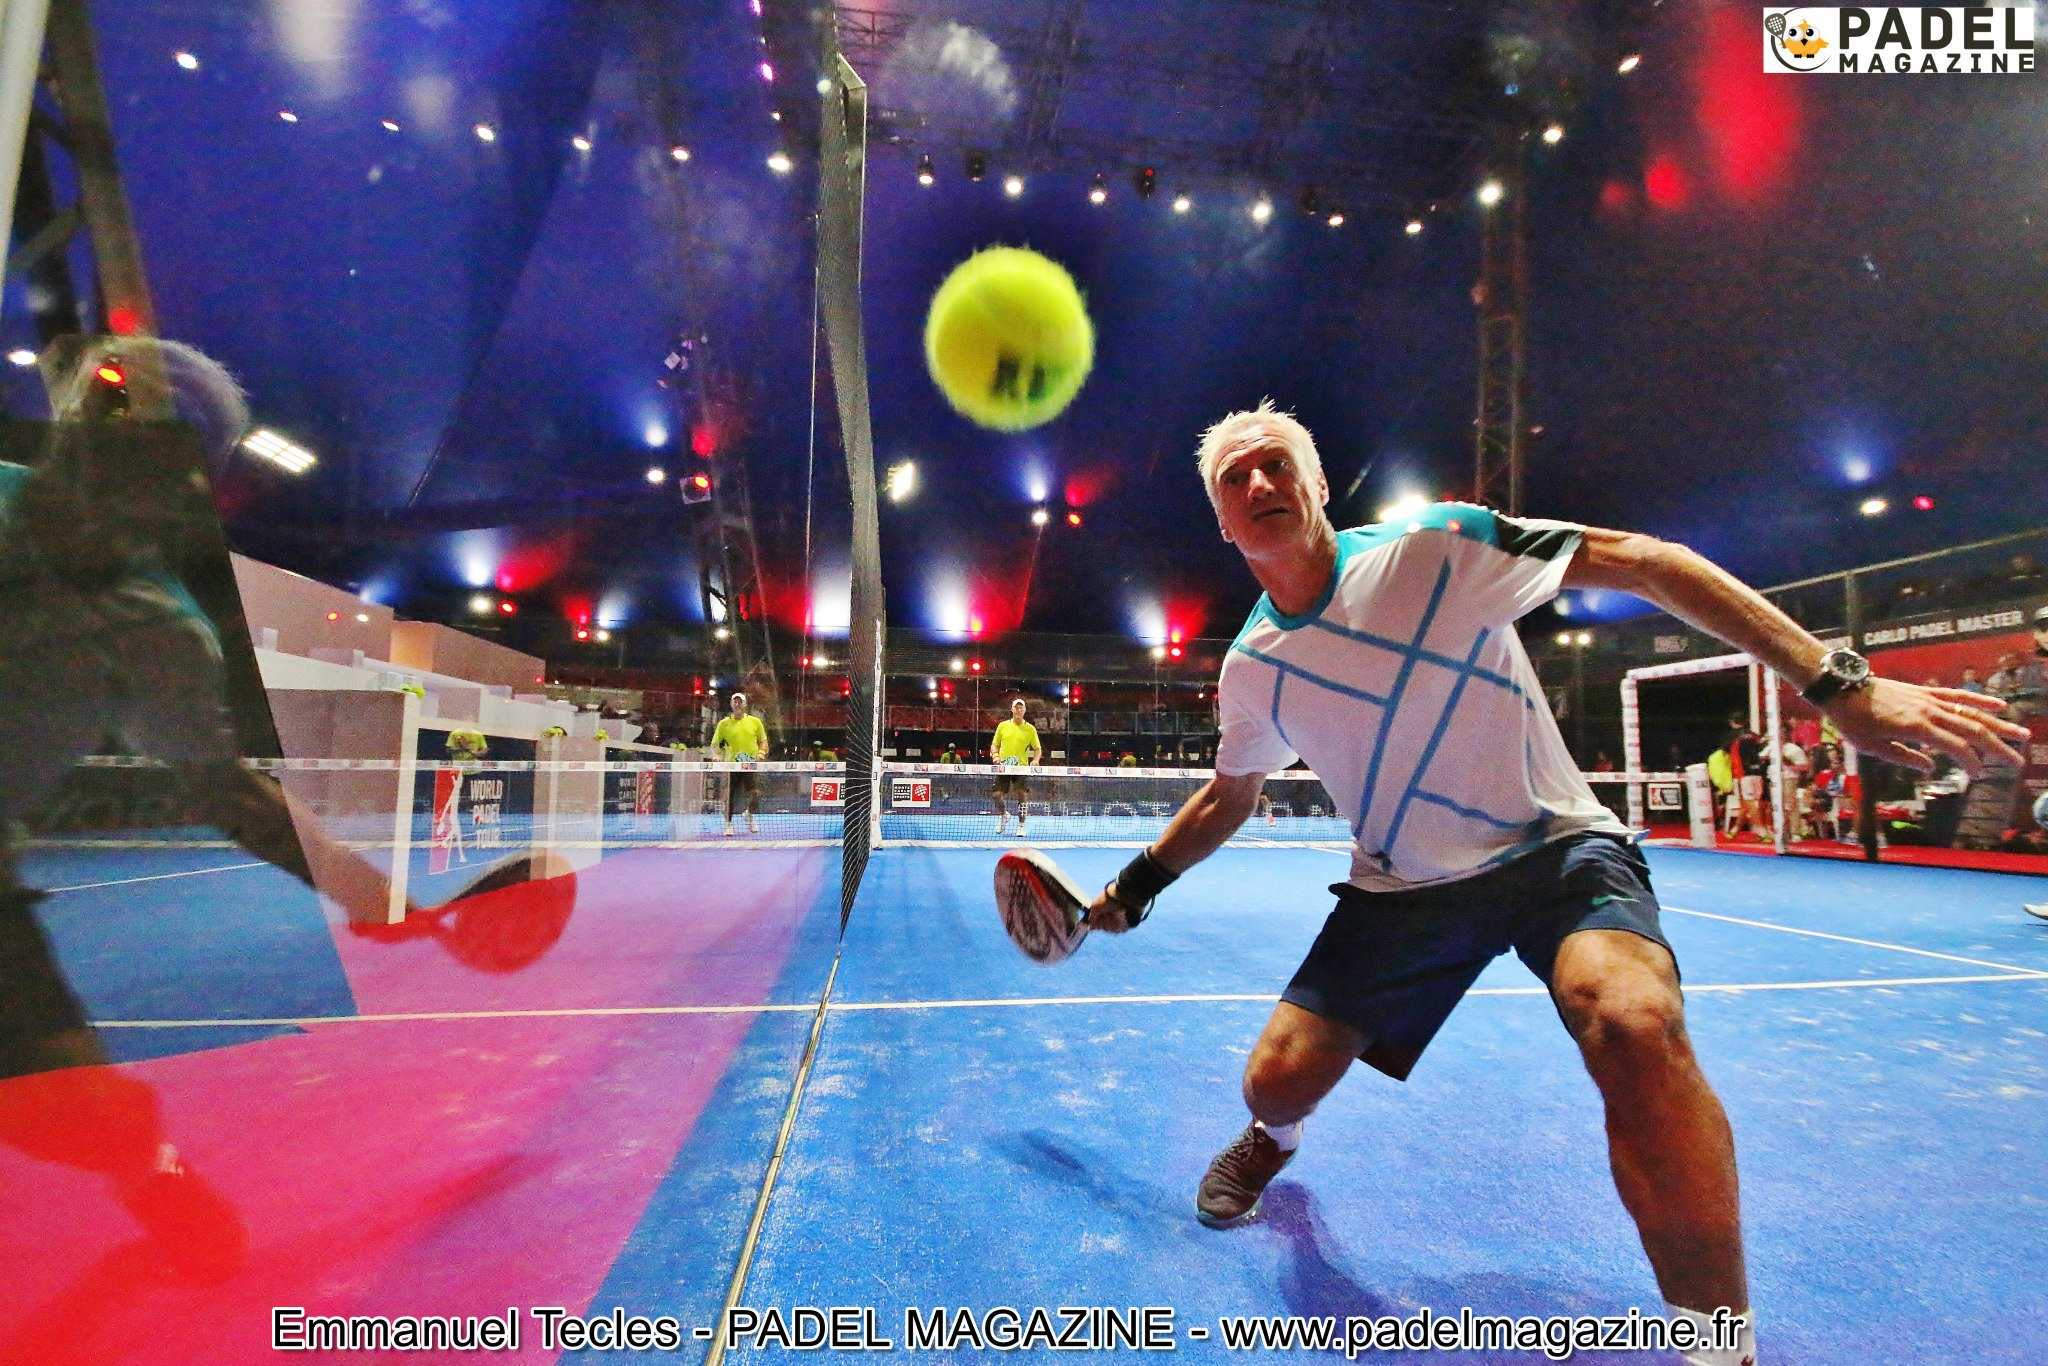 Didier Deschamps et sa passion : le PADEL